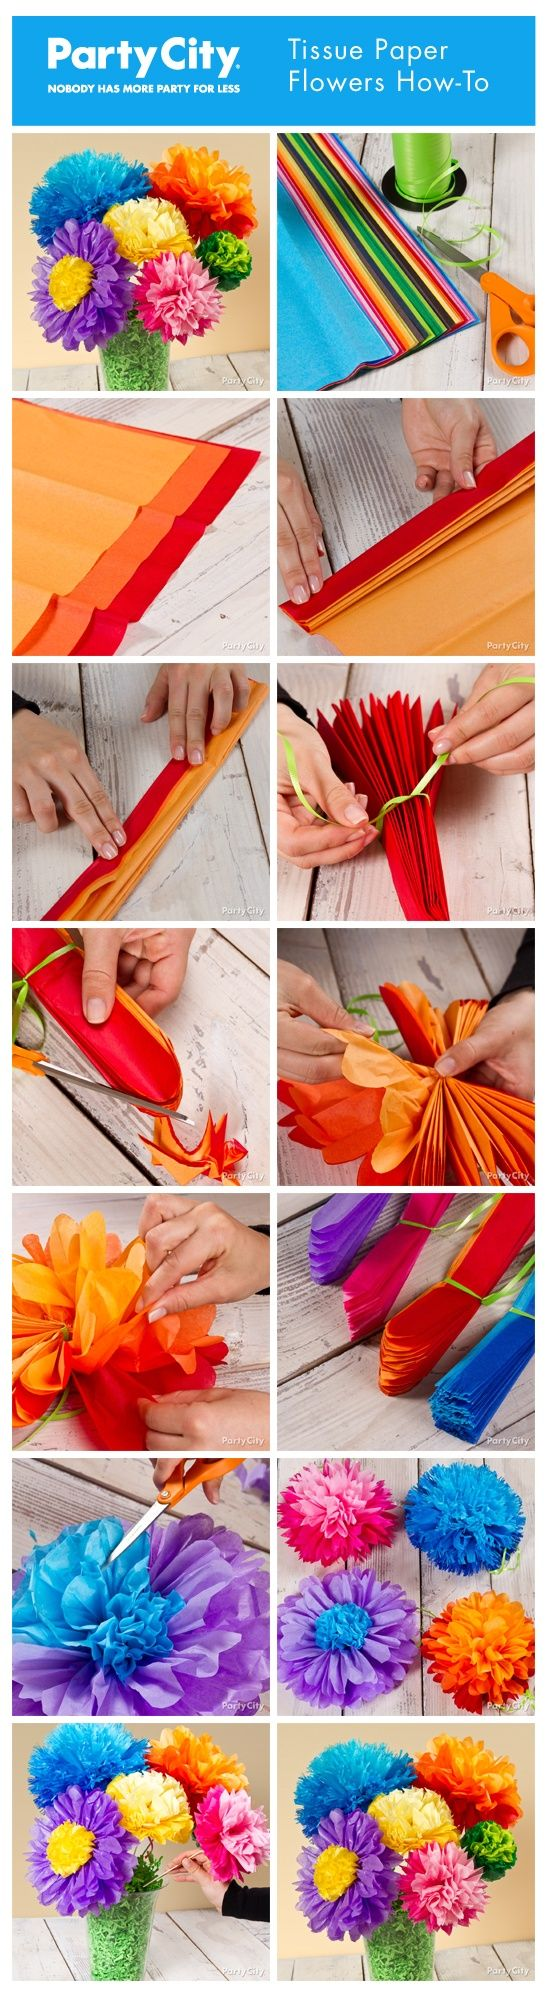 Adoro essas flores fceis de executar festas pinterest tissue diy tutorial how to make pretty tissue paper flowers step by step photo tutorial for different sizes and petal shapes mightylinksfo